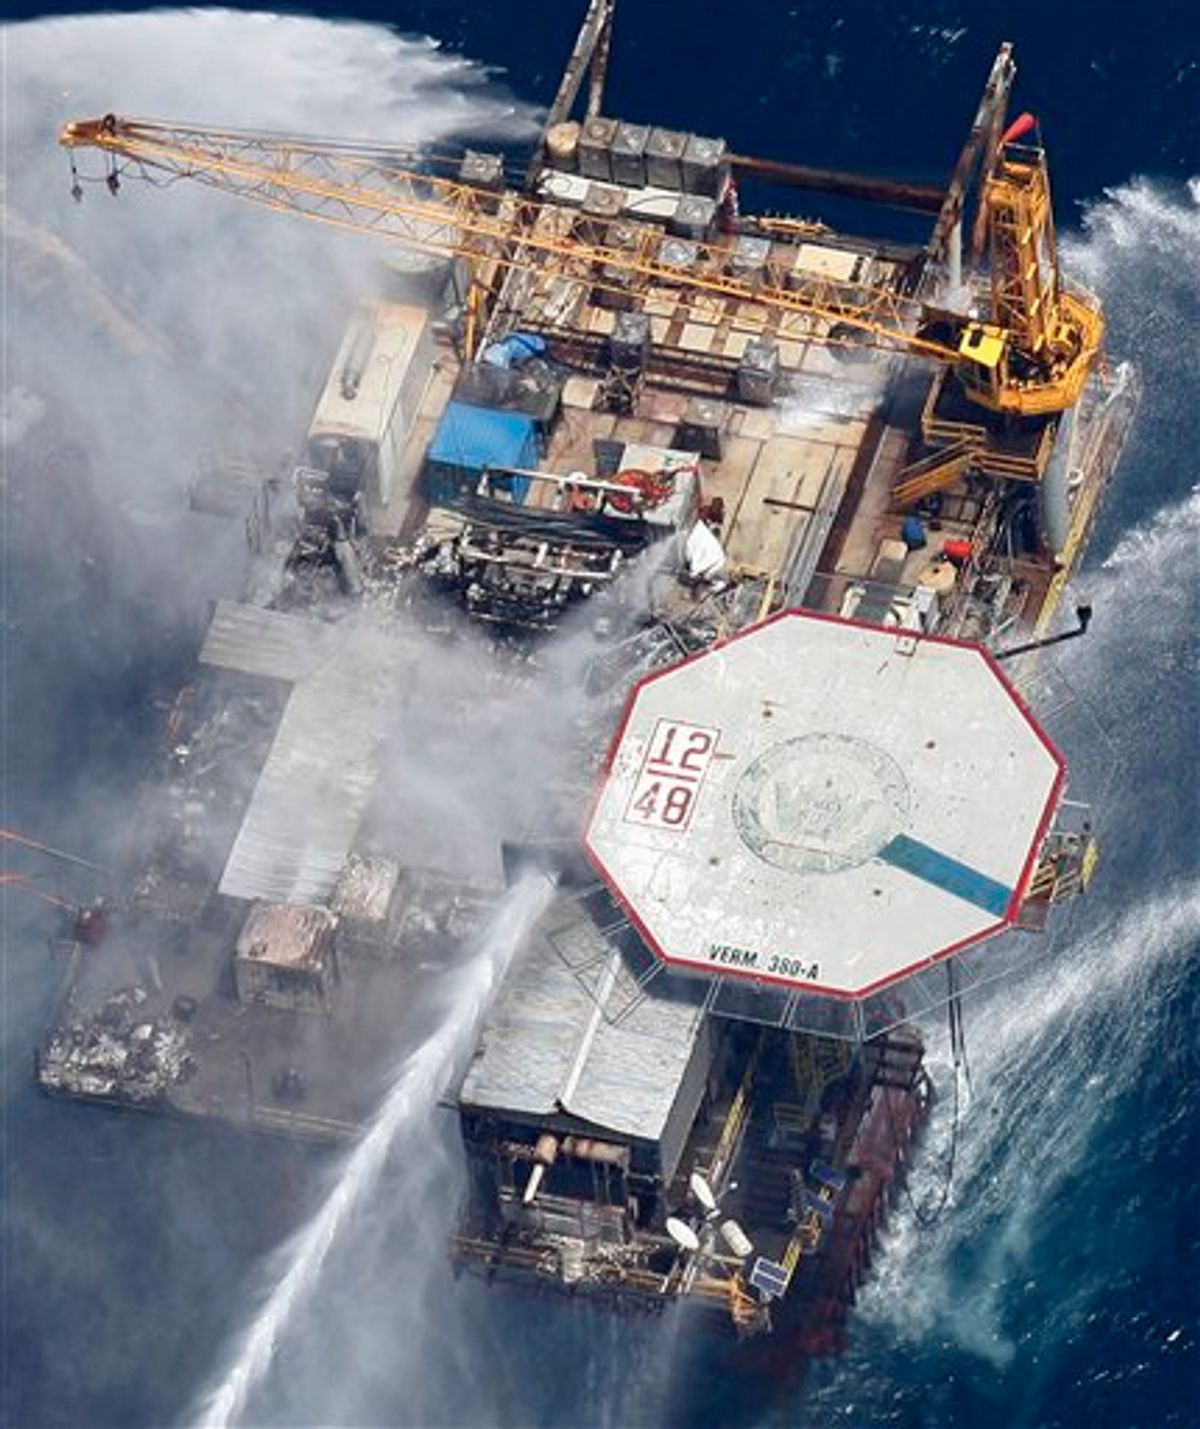 Boats are seen spraying water on an oil and gas platform that exploded in the Gulf of Mexico, of the coast of Louisiana., Thursday, Sept. 2, 2010. All 13 crew members were rescued.  (AP Photo/Gerald Herbert) (AP)